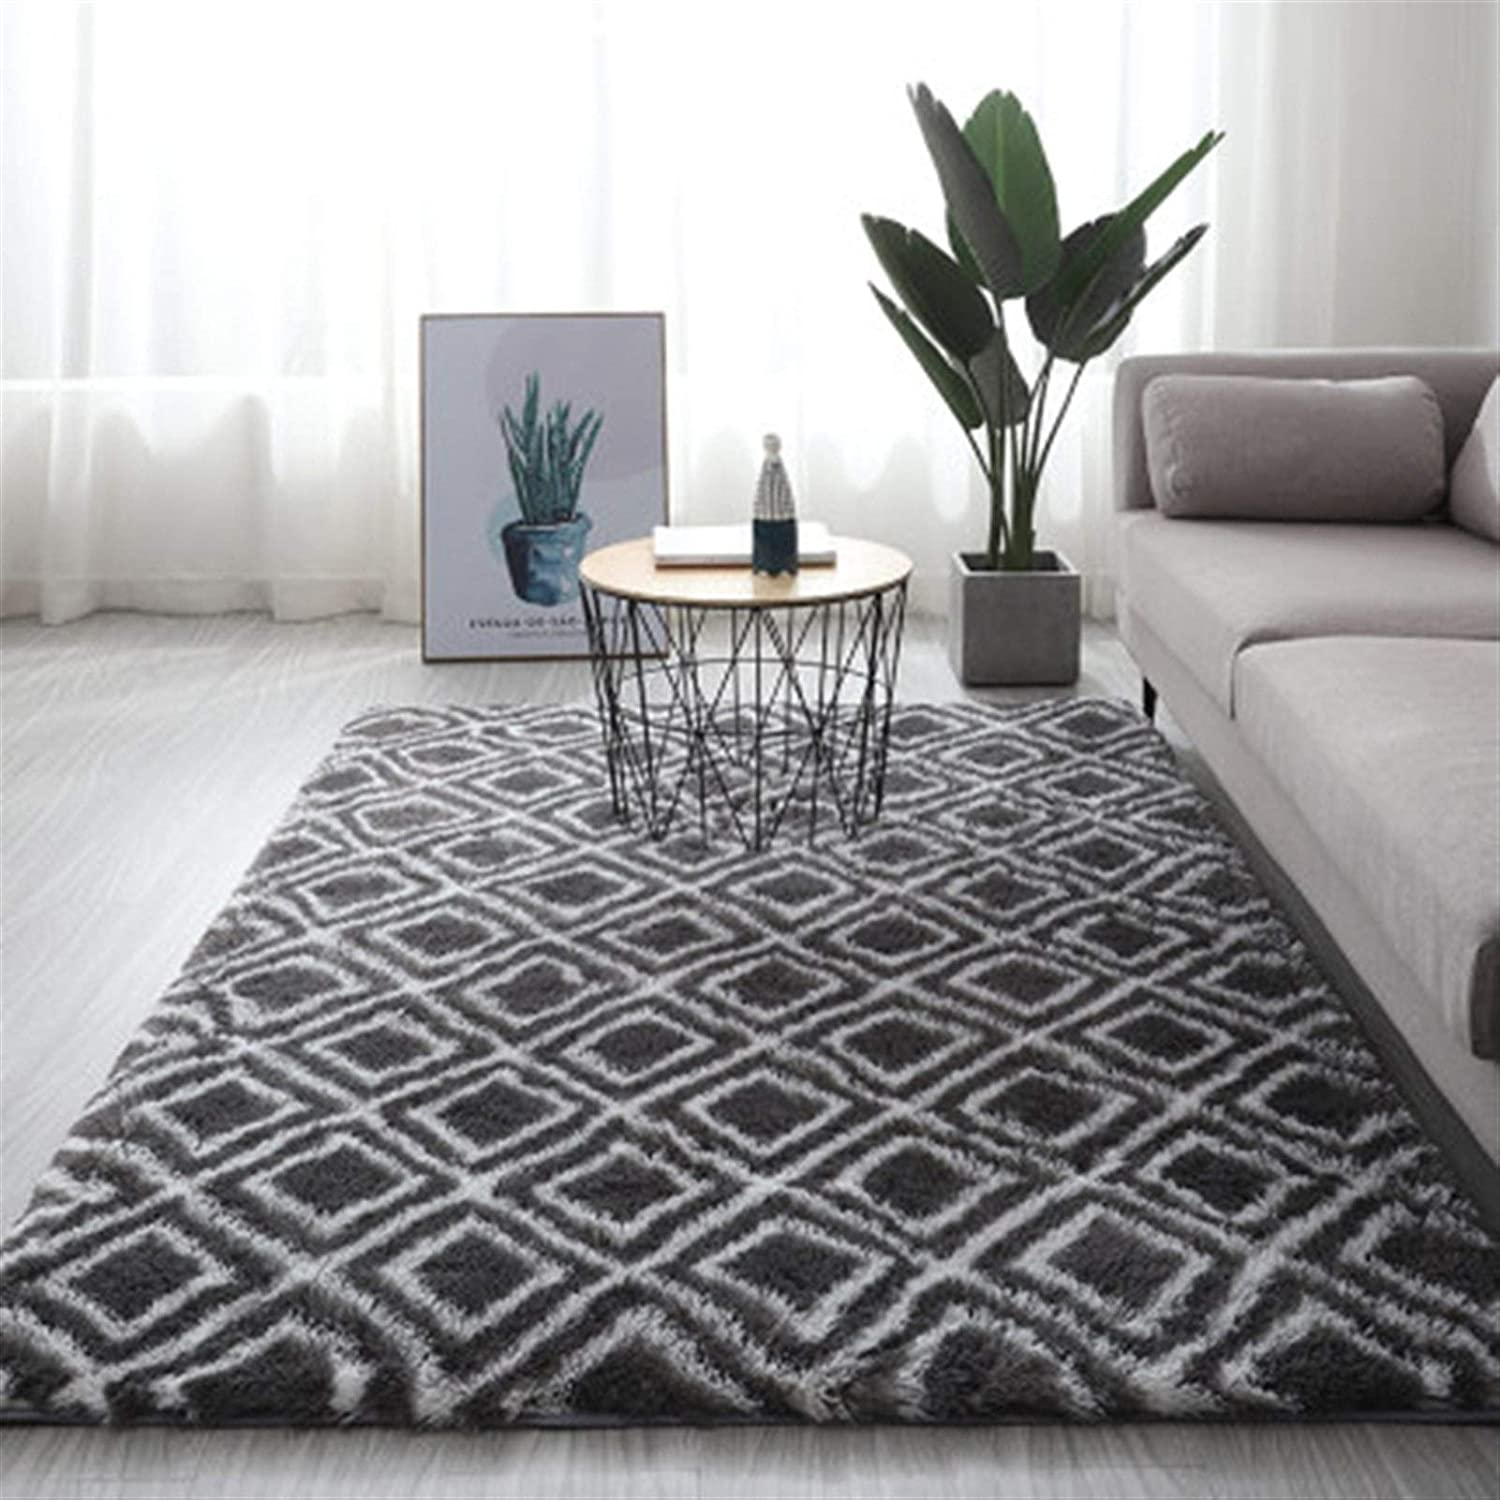 Max 69% OFF IOPV Grey Carpet Tie Dyeing Plush Carpets Soft Living Clearance SALE Limited time Room B for